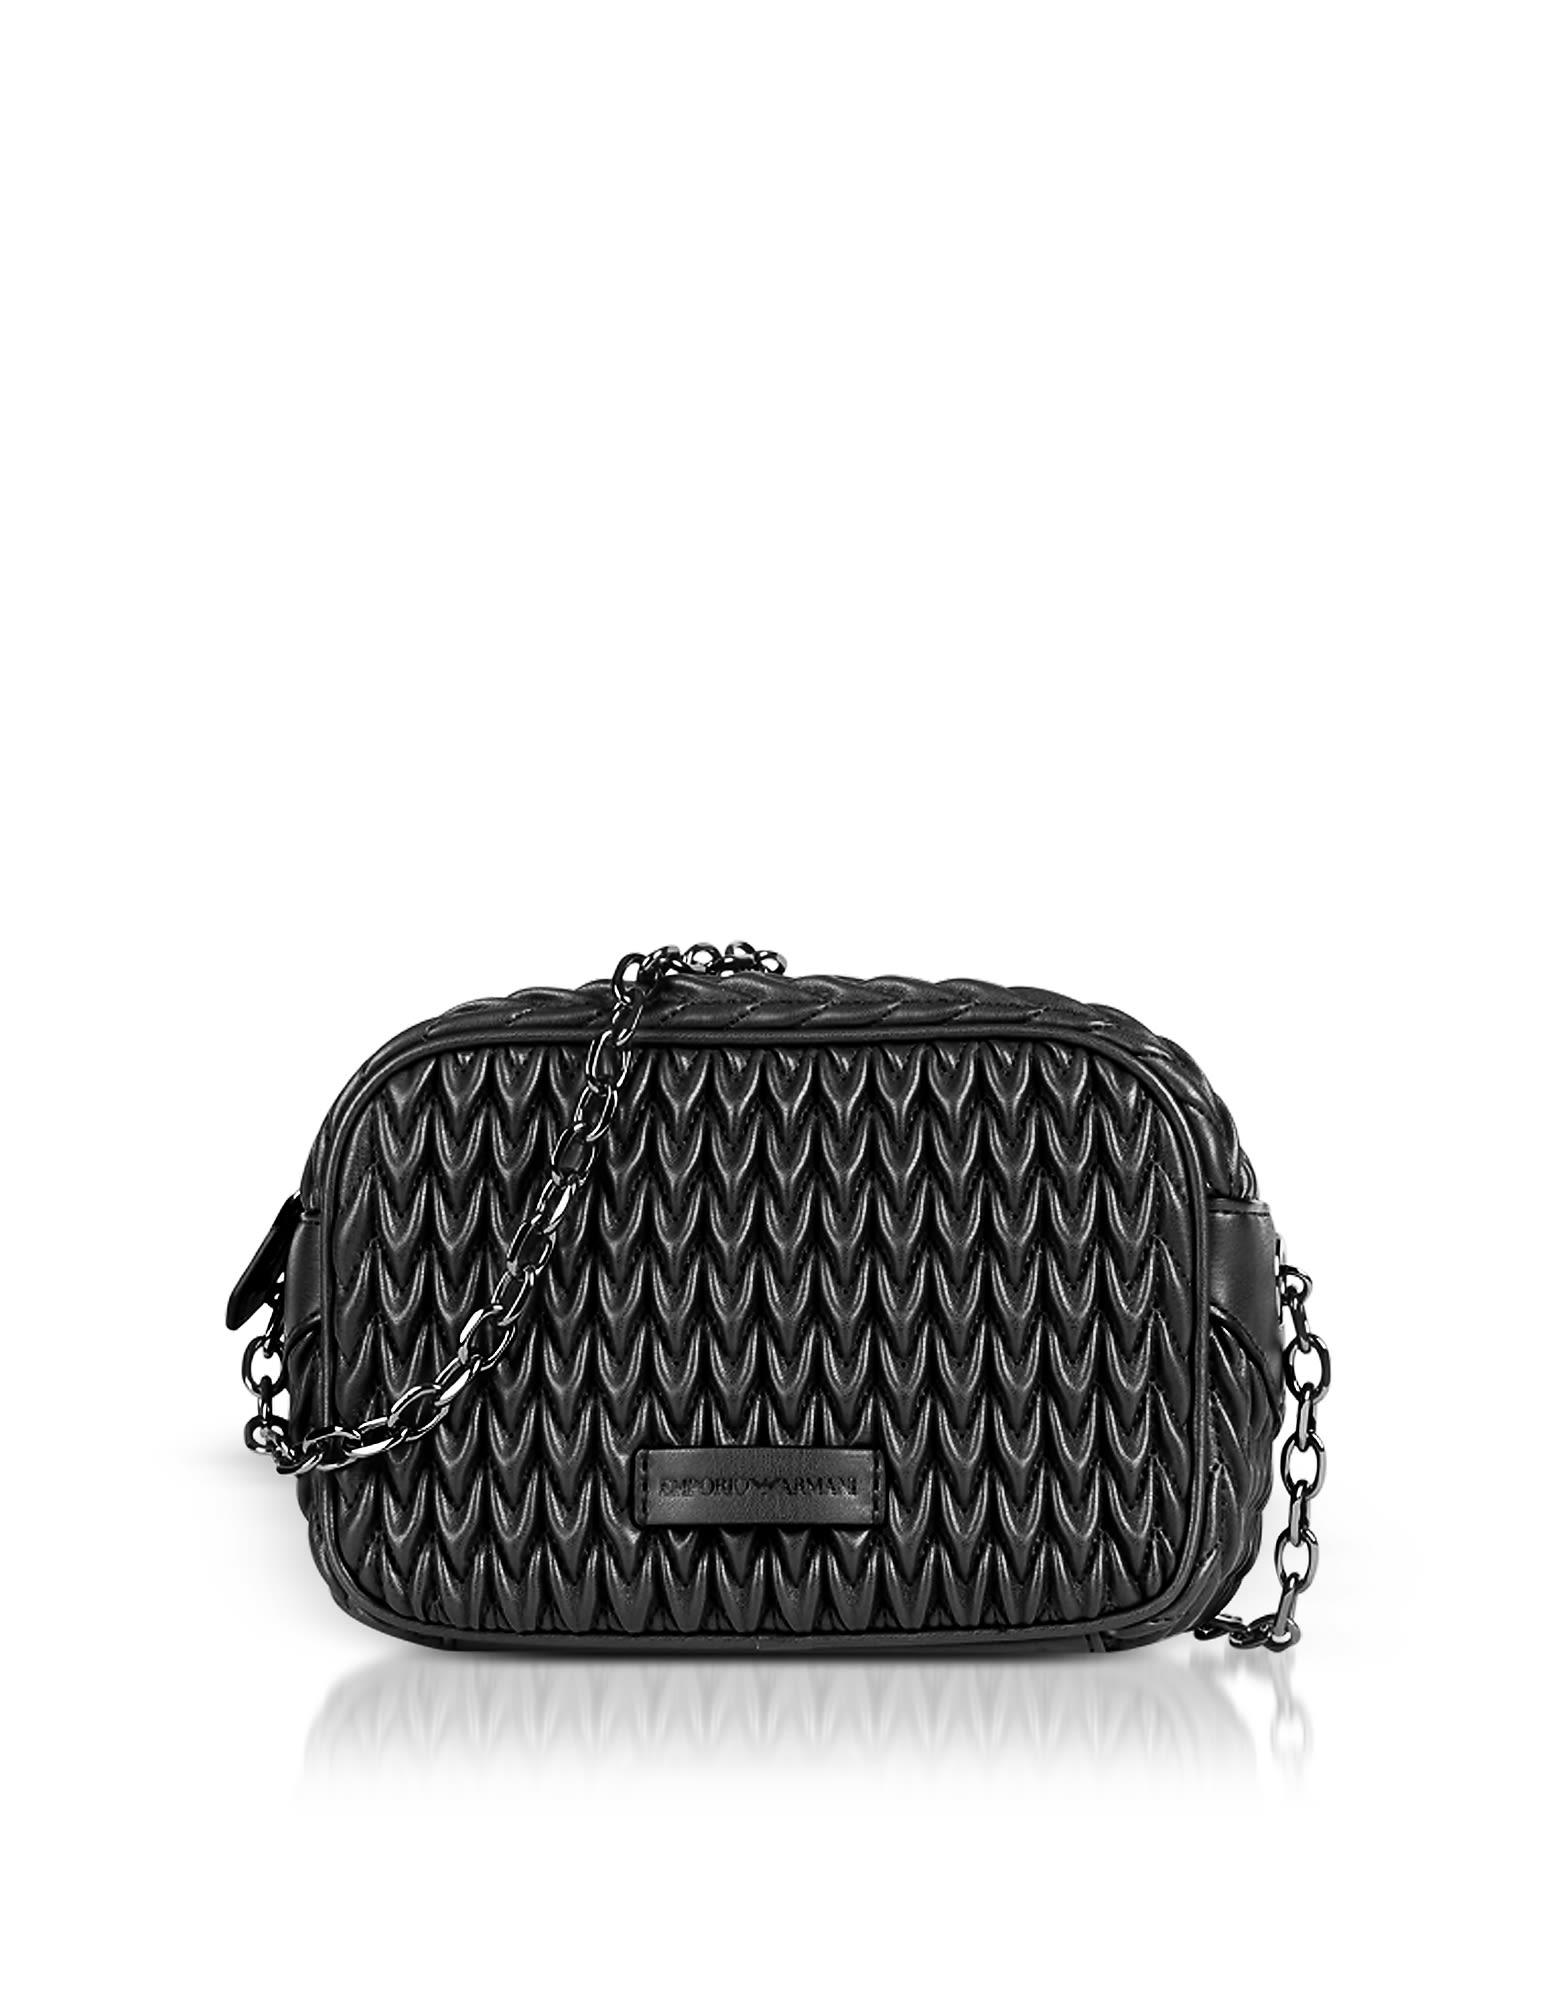 Emporio Armani Quilted Eco-Leather Shoulder Bag In Black  aabcadfd39e07